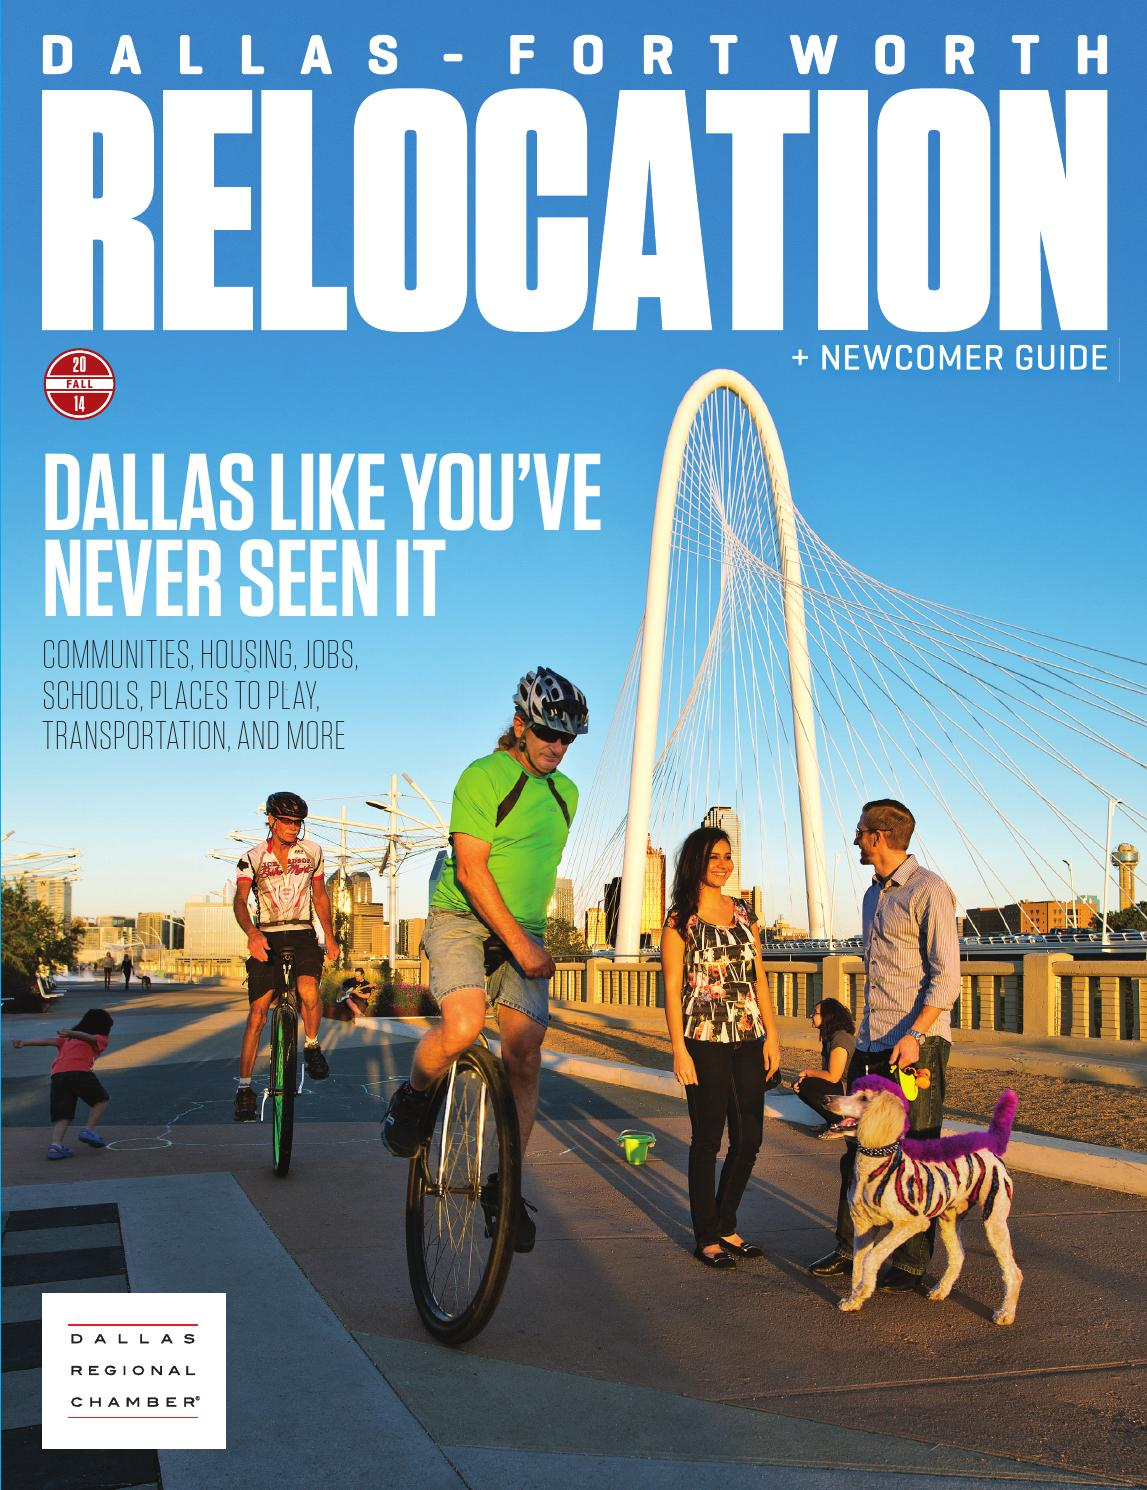 dallas fort worth relocation newcomer guide fall 2014 by dallas